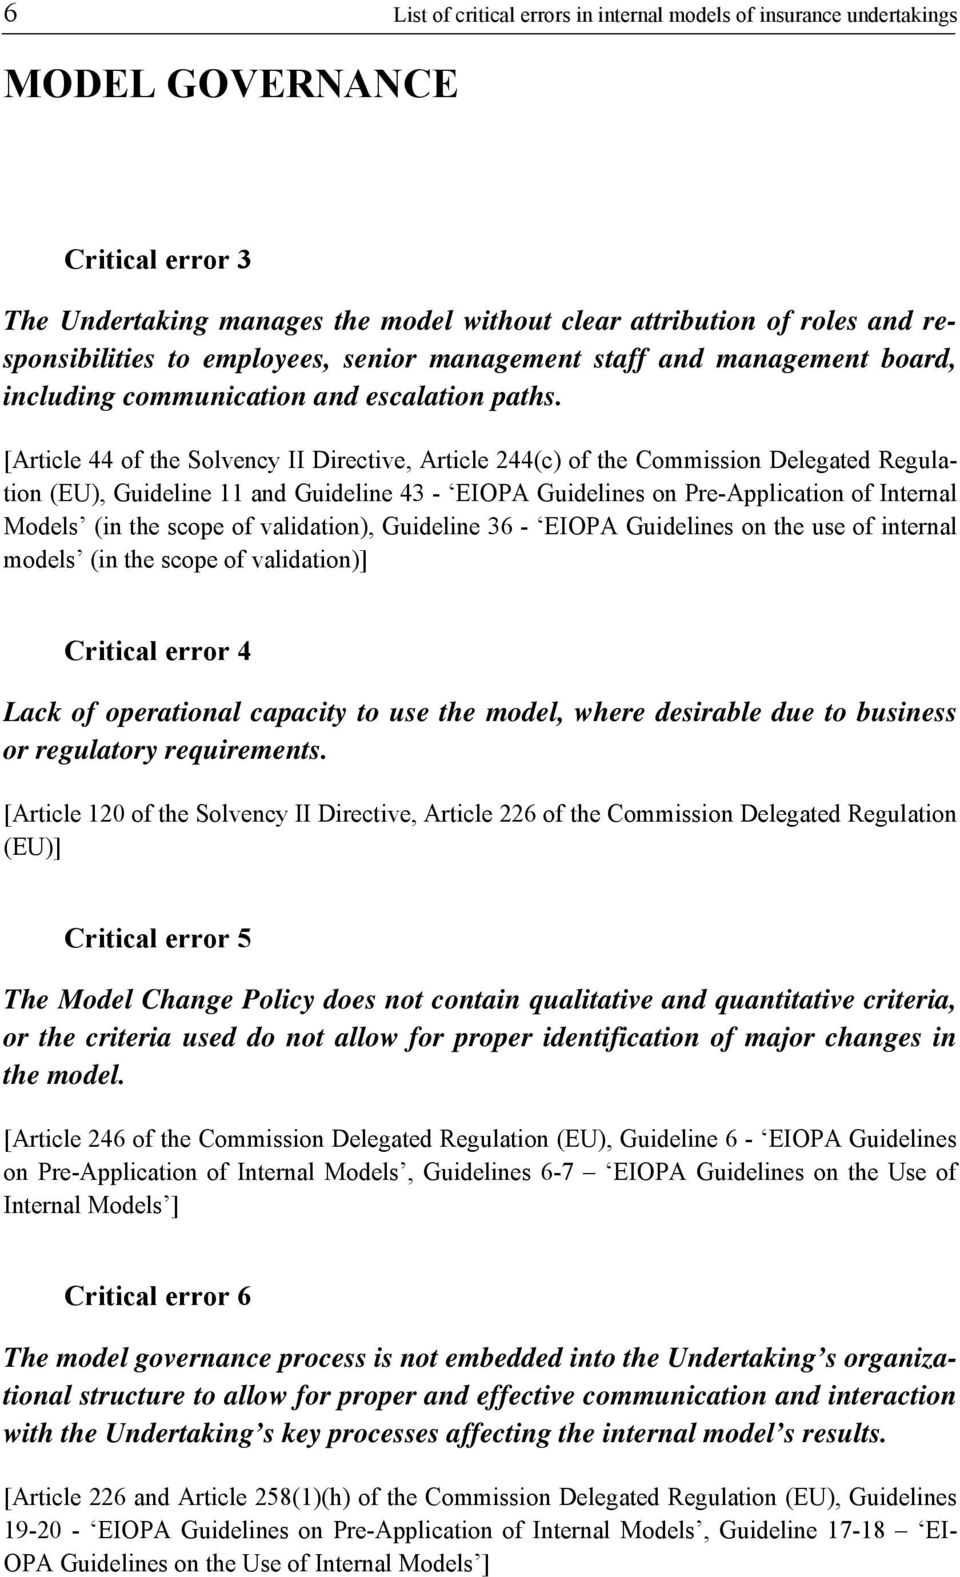 [Article 44 of the Solvency II Directive, Article 244(c) of the Commission Delegated Regulation (EU), Guideline 11 and Guideline 43 - EIOPA Guidelines on Pre-Application of Internal Models (in the